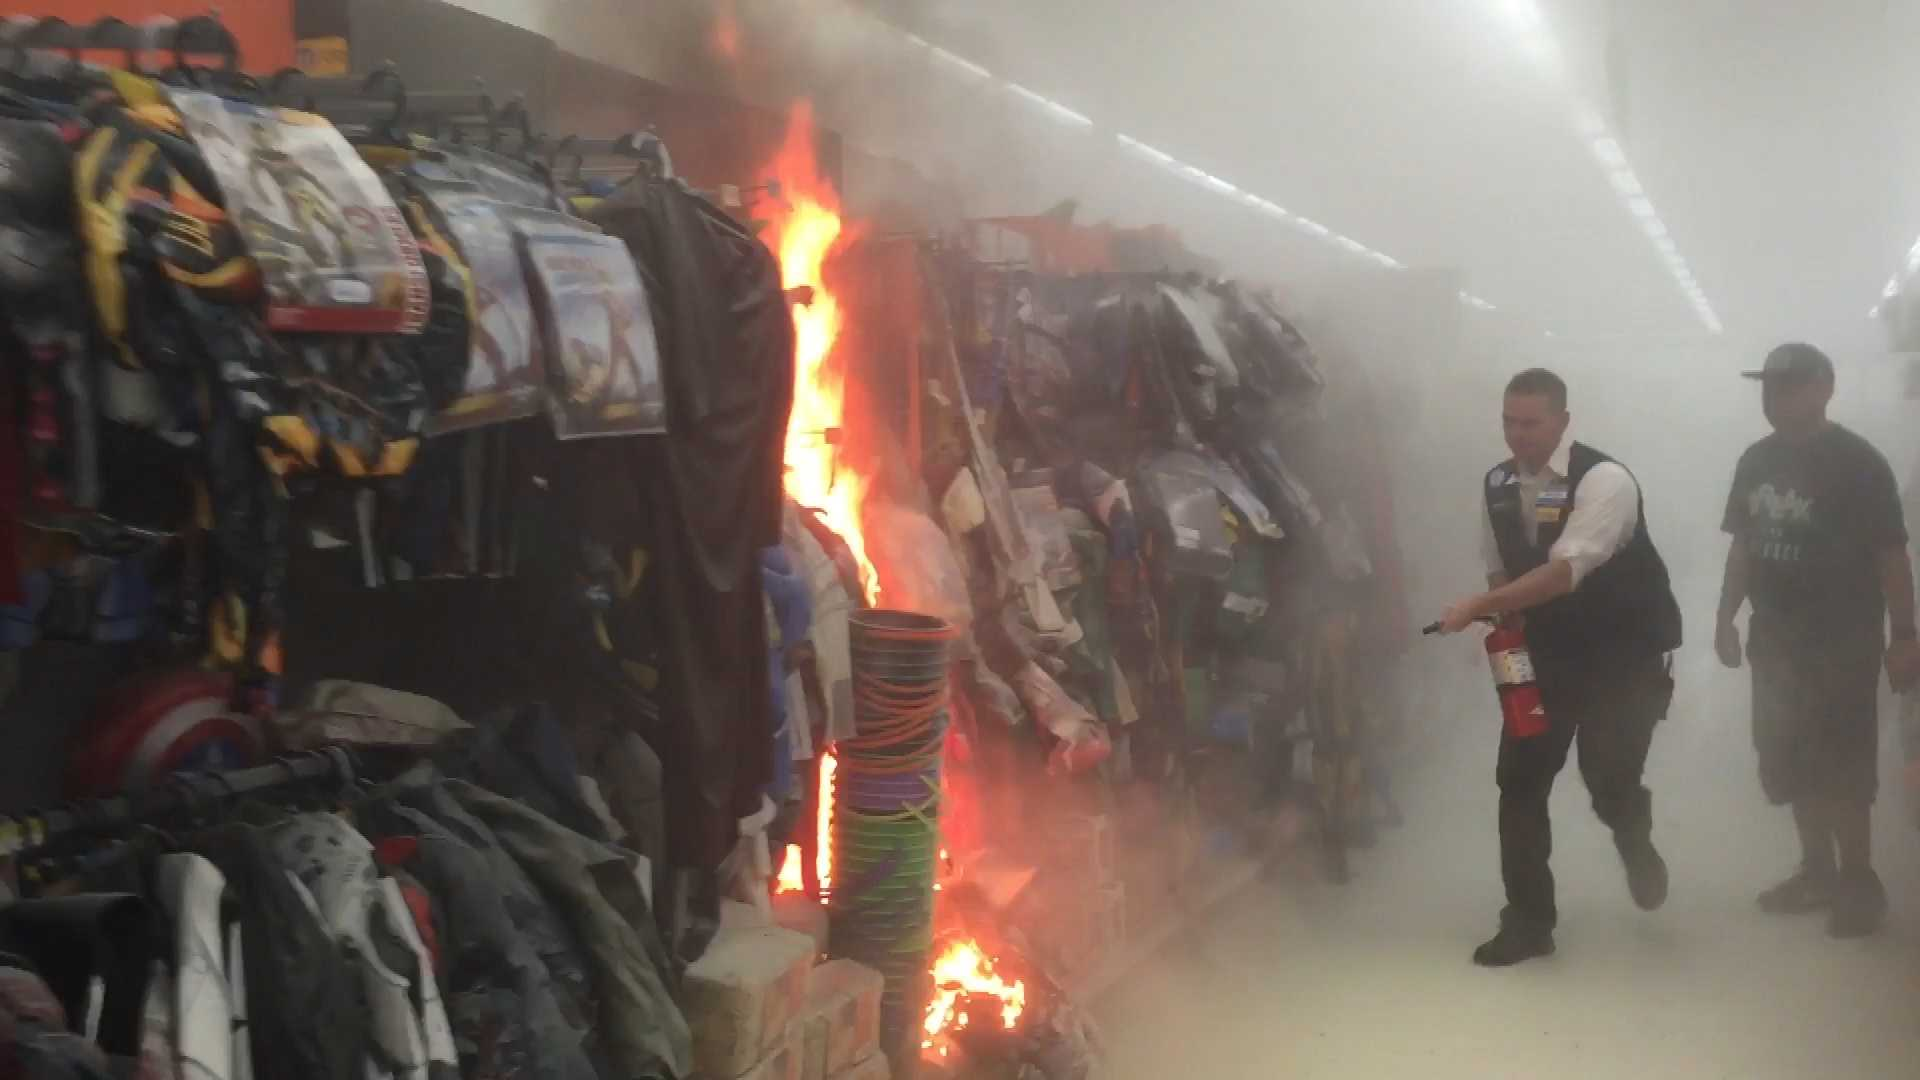 A Walmart employee uses a fire extinguisher to help contain a blaze set in the costume & Man sets Halloween costumes on fire inside Walmart